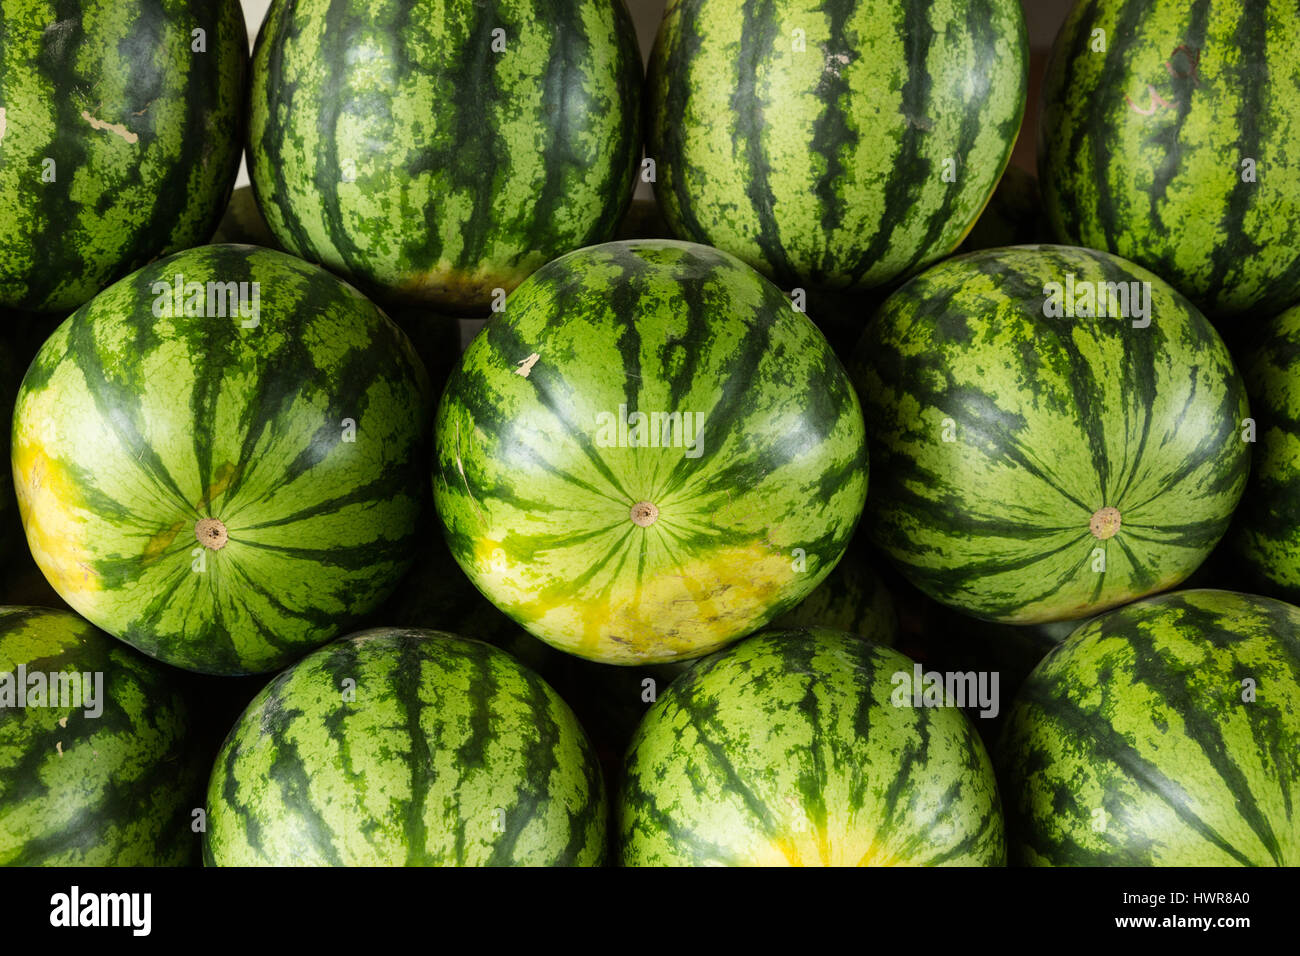 Watermelons for sale at a market stand in Paramaribo, Suriname. - Stock Image